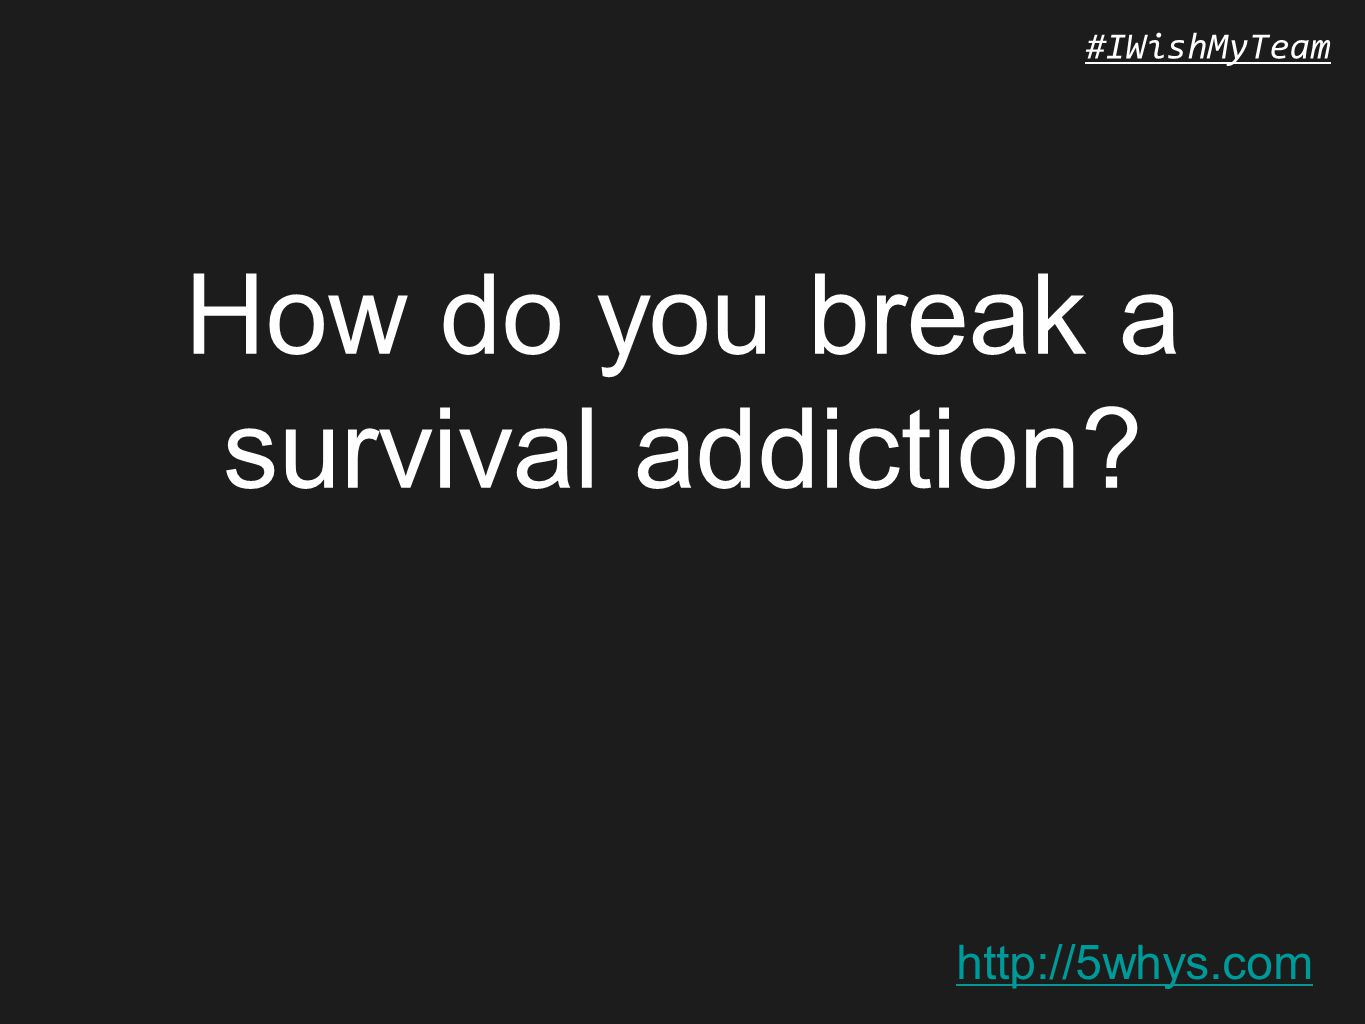 http://5whys.com #IWishMyTeam How do you break a survival addiction